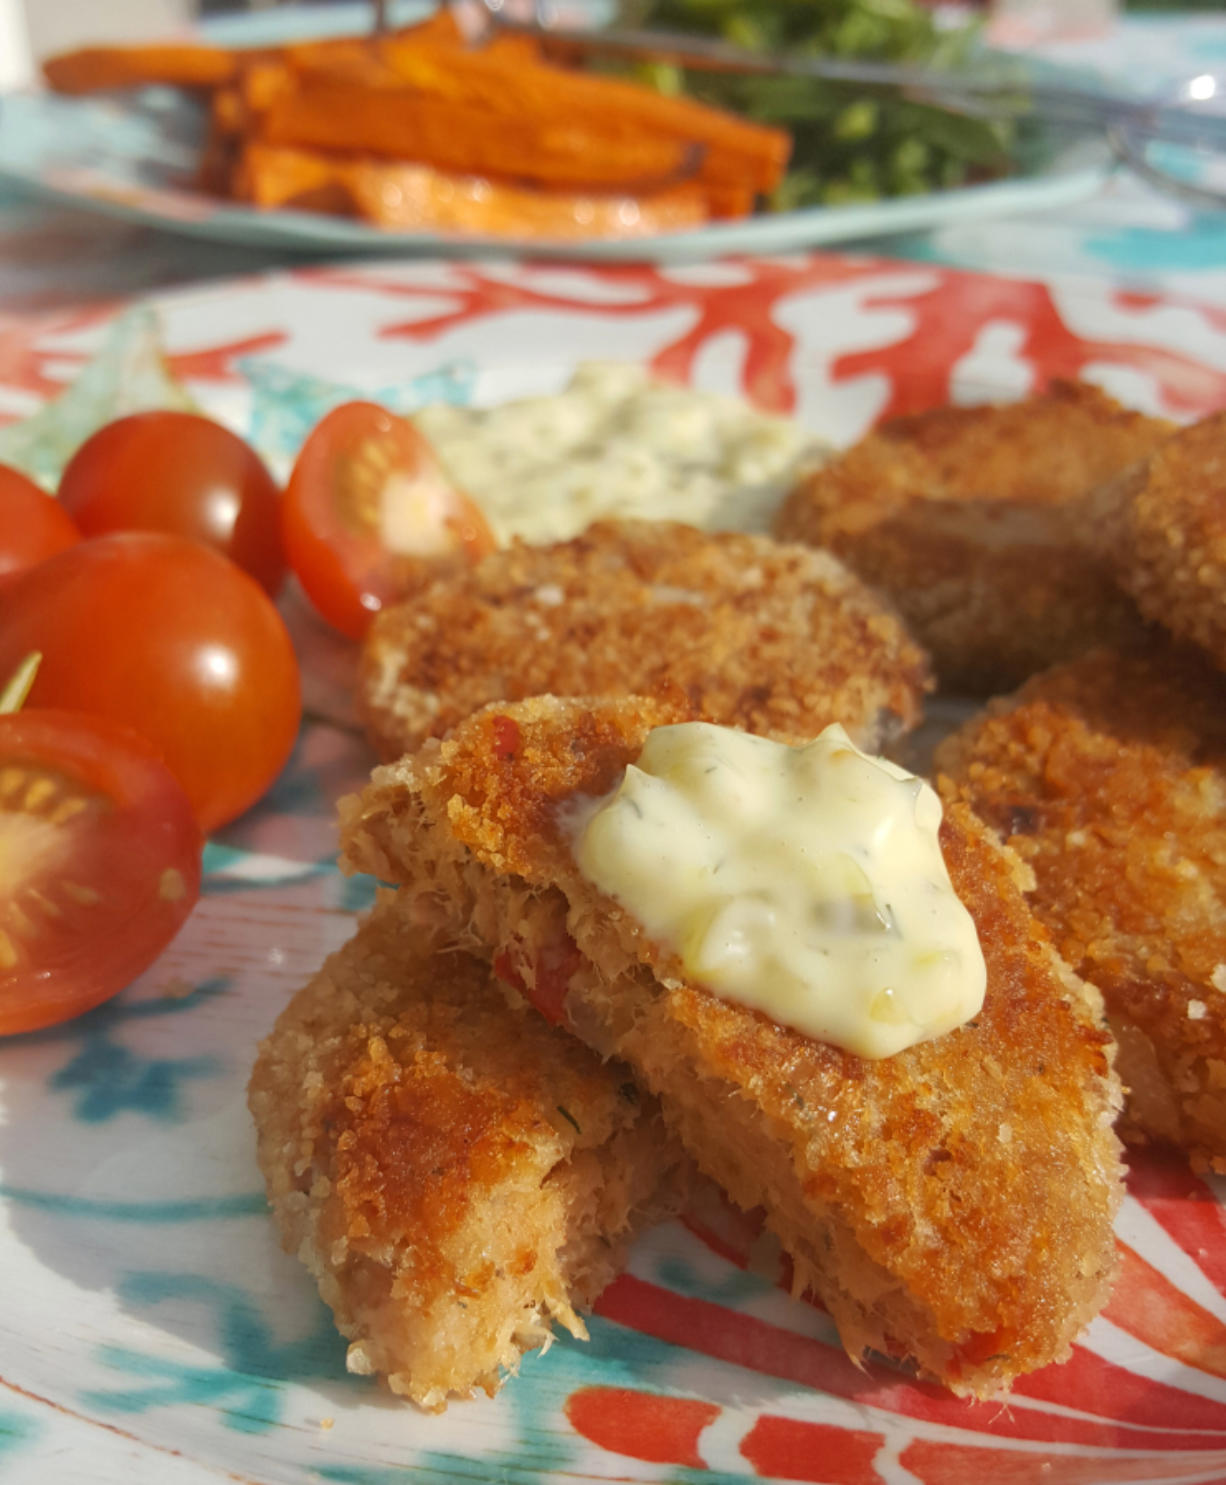 Tuna croquettes or tuna patties, fried to a golden brown, are a delicious way to stretch a can or two of tuna.